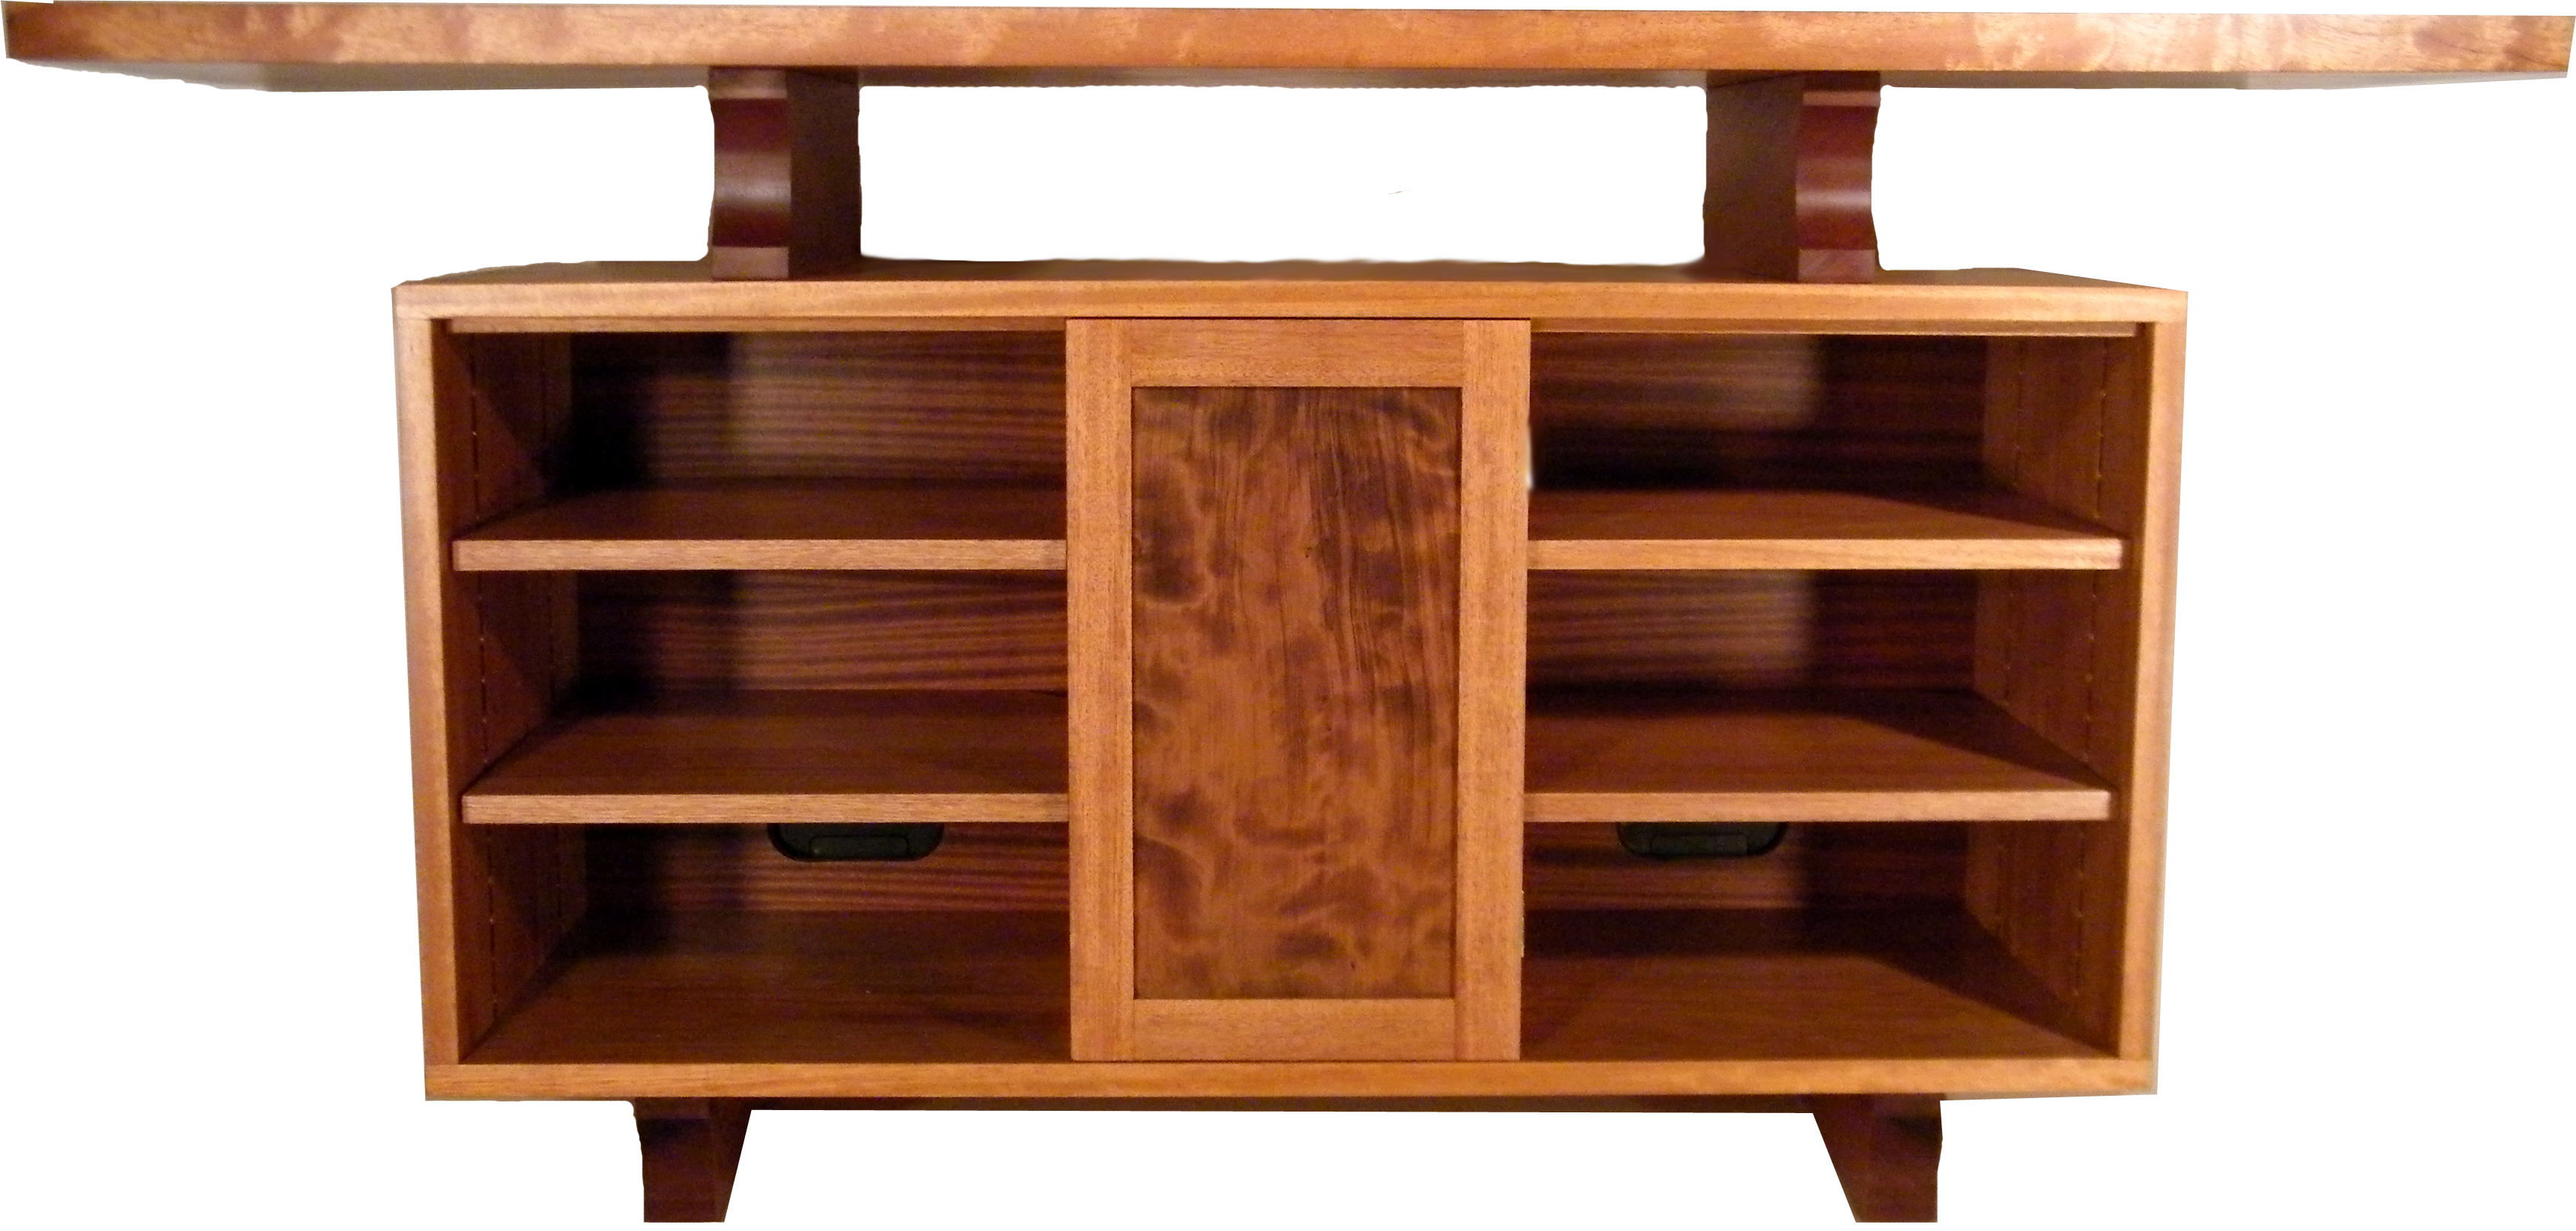 Custom wood furniture at the galleria for Wooden furniture